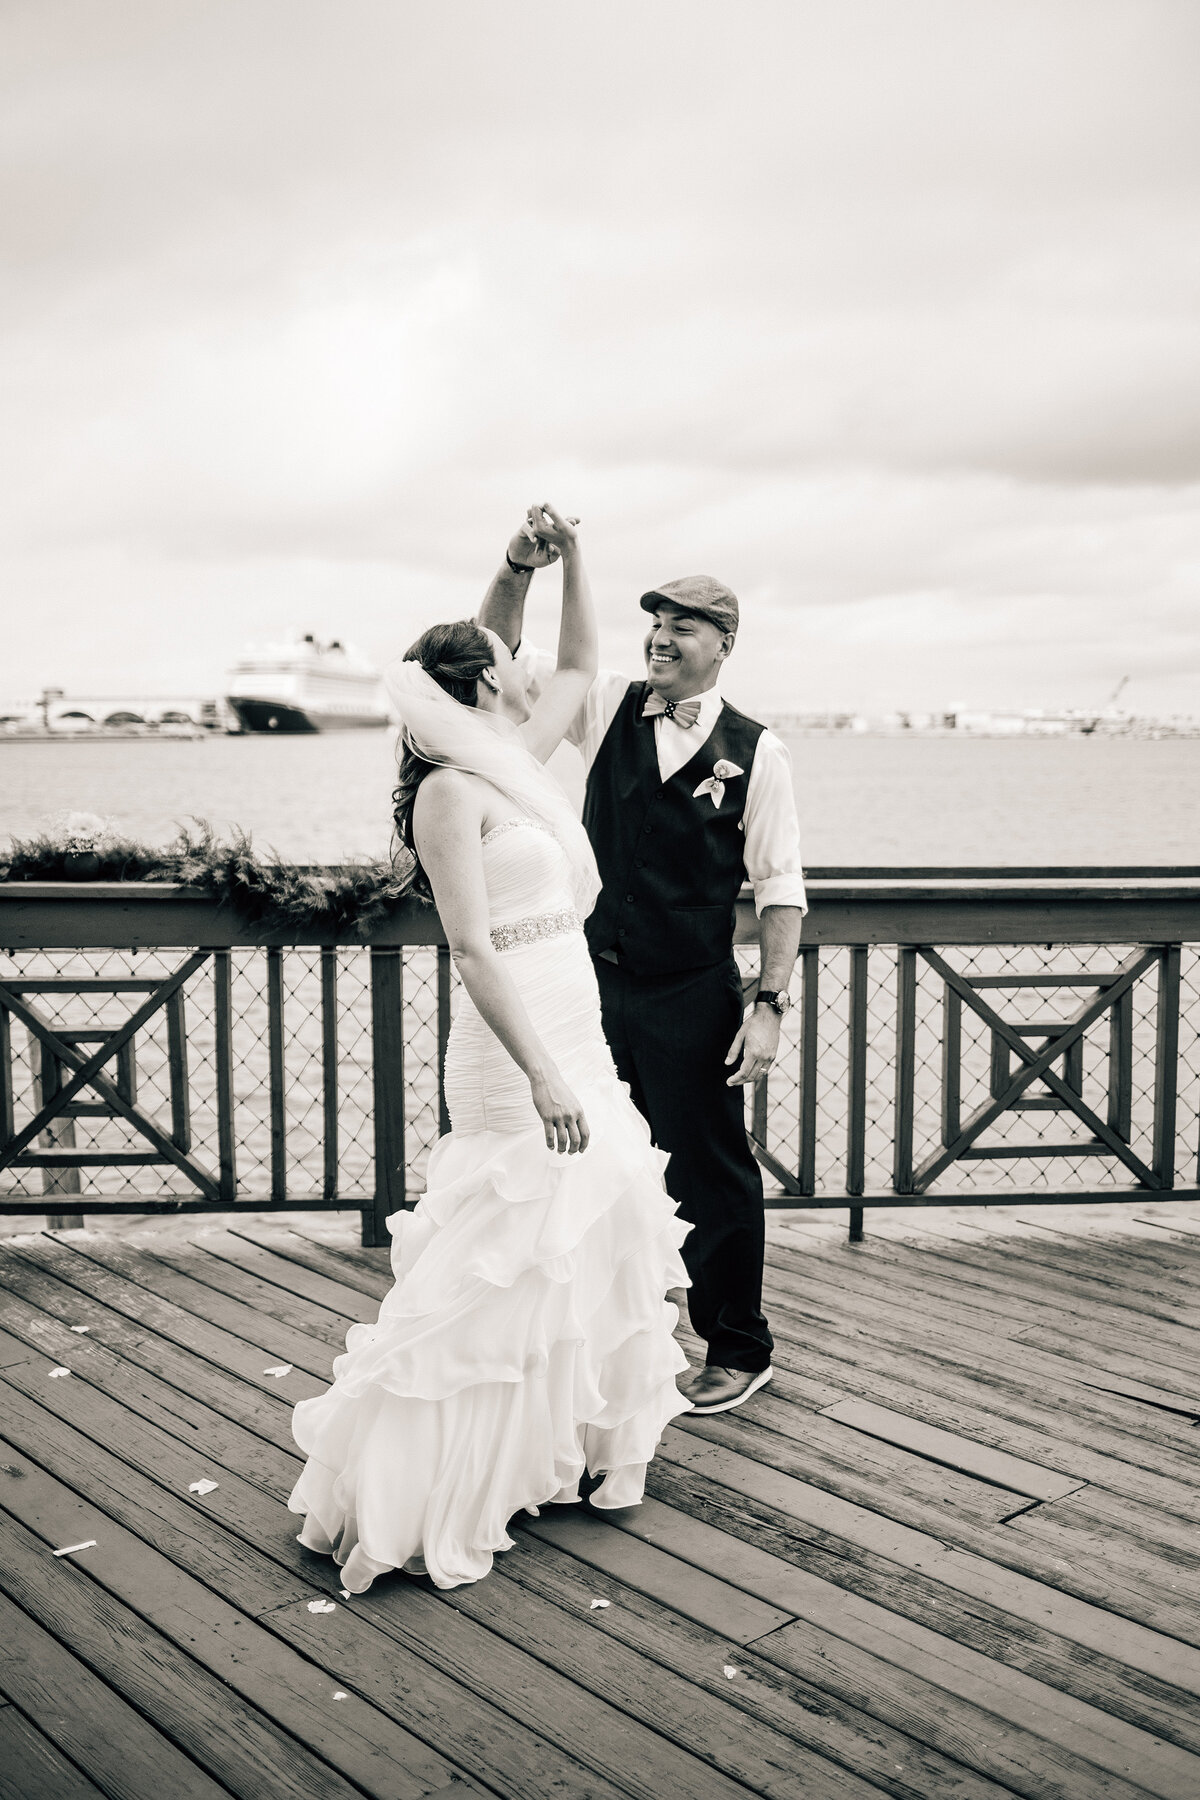 Kimberly_Hoyle_Photography_Marrero_Millikens_Reef_Wedding-63